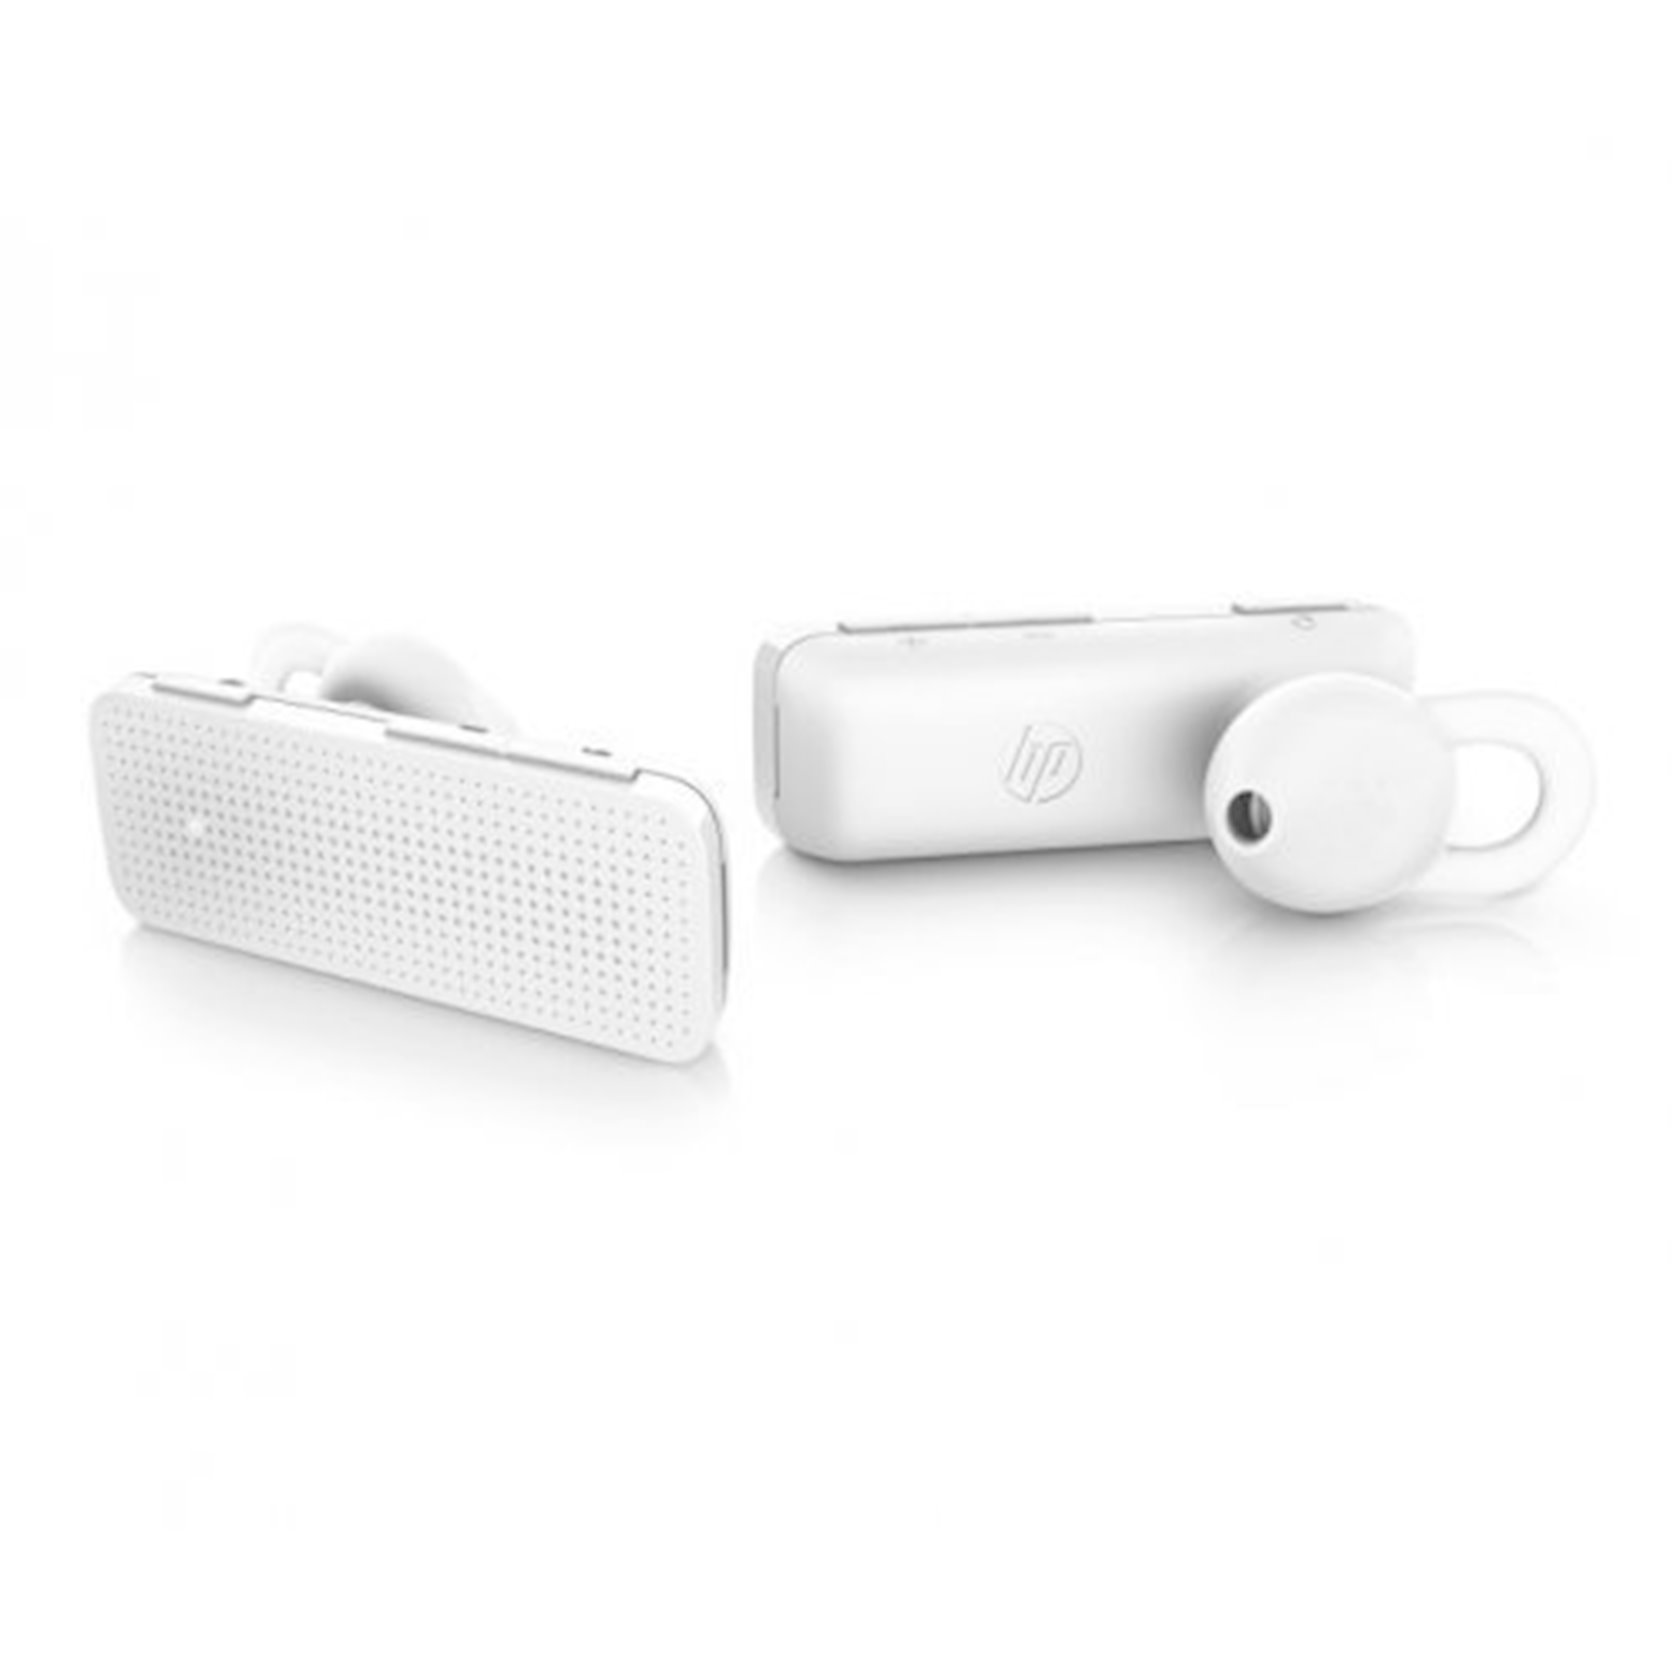 Simsiz qulaqlıq-qarnitur HP H3200 BT Wireless Headset G1Y52AA White